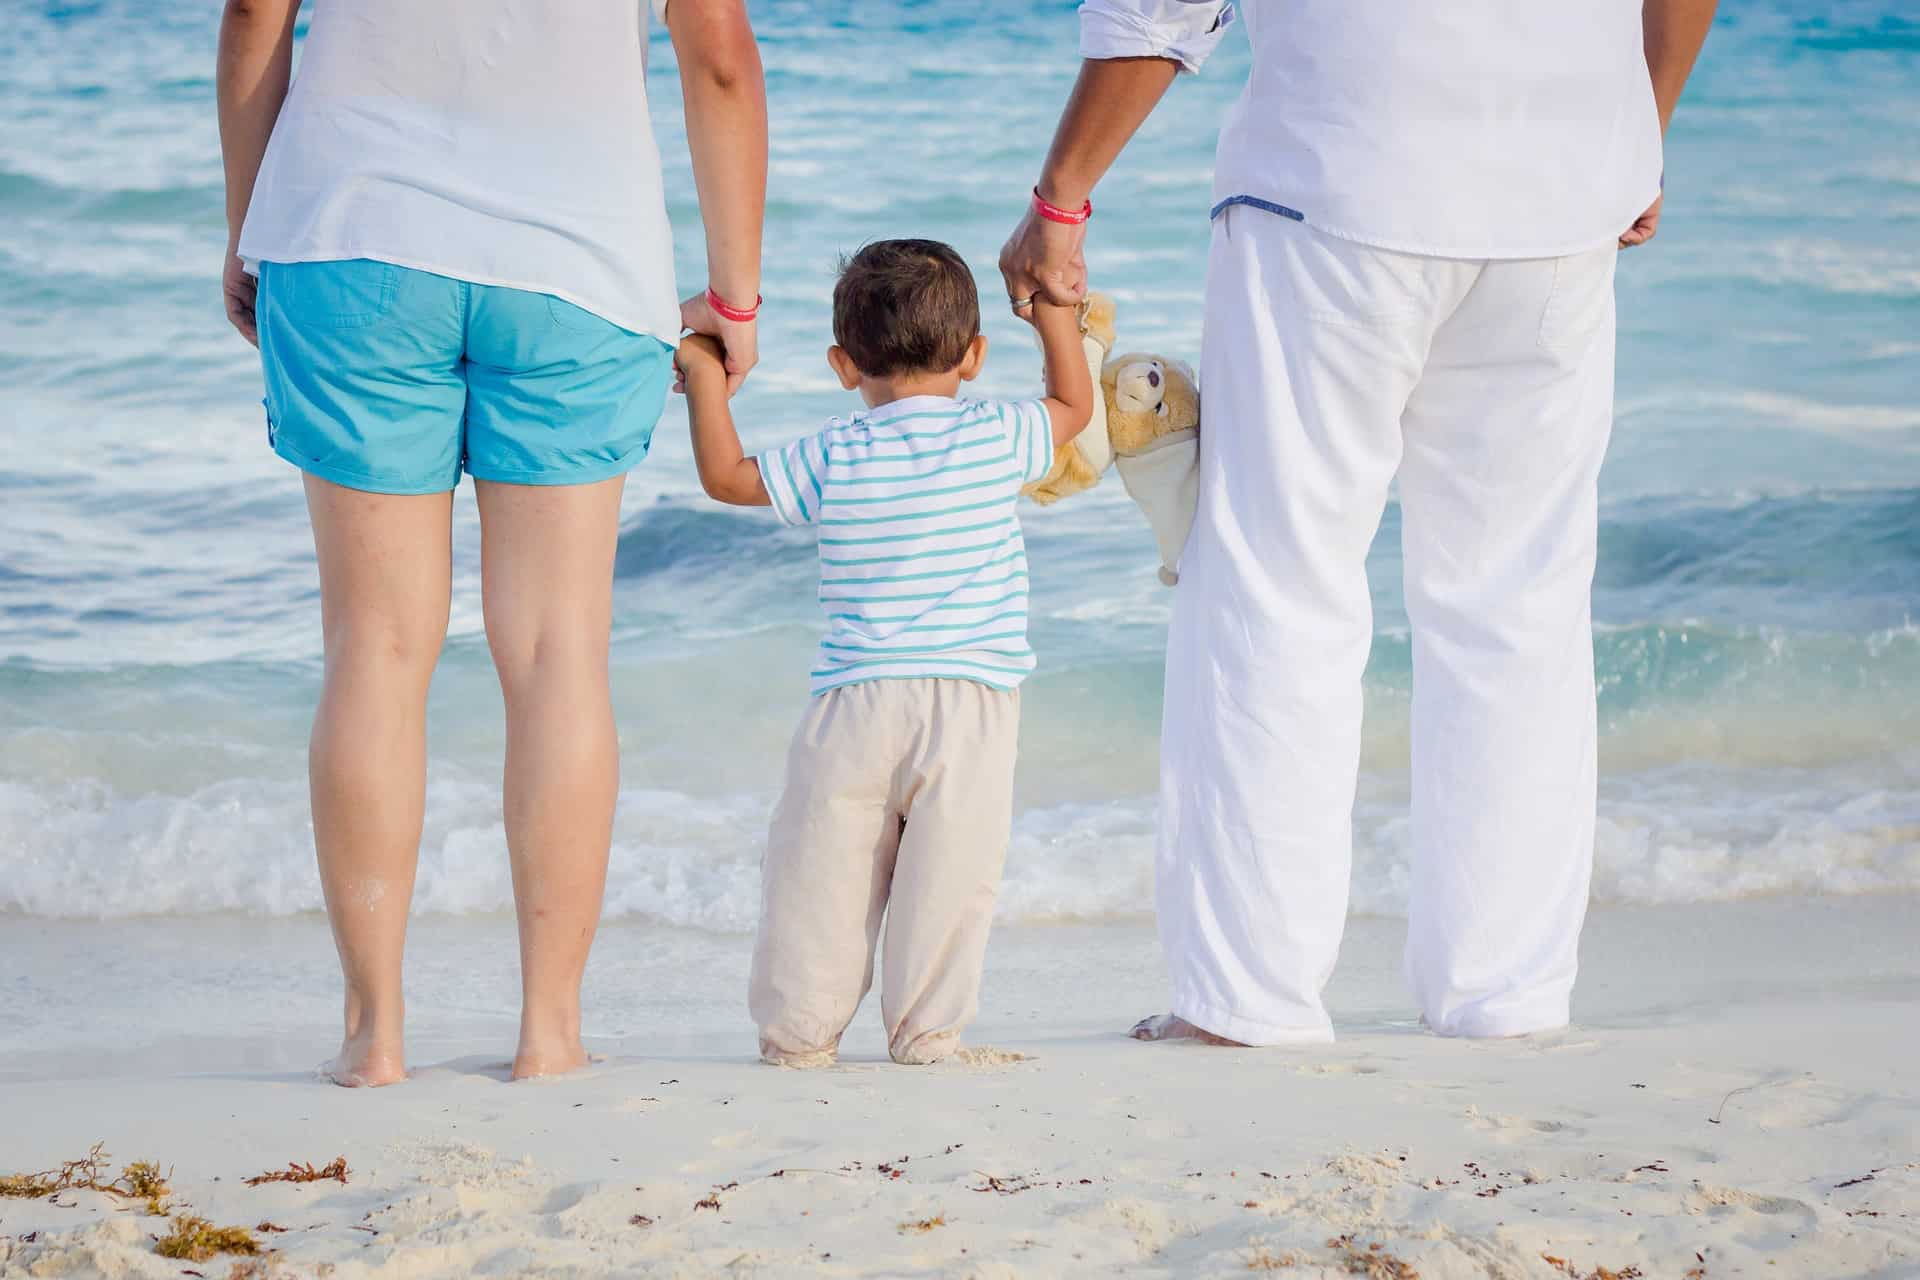 Family Vacation: How To Plan Your Stay In A Substantial Budget